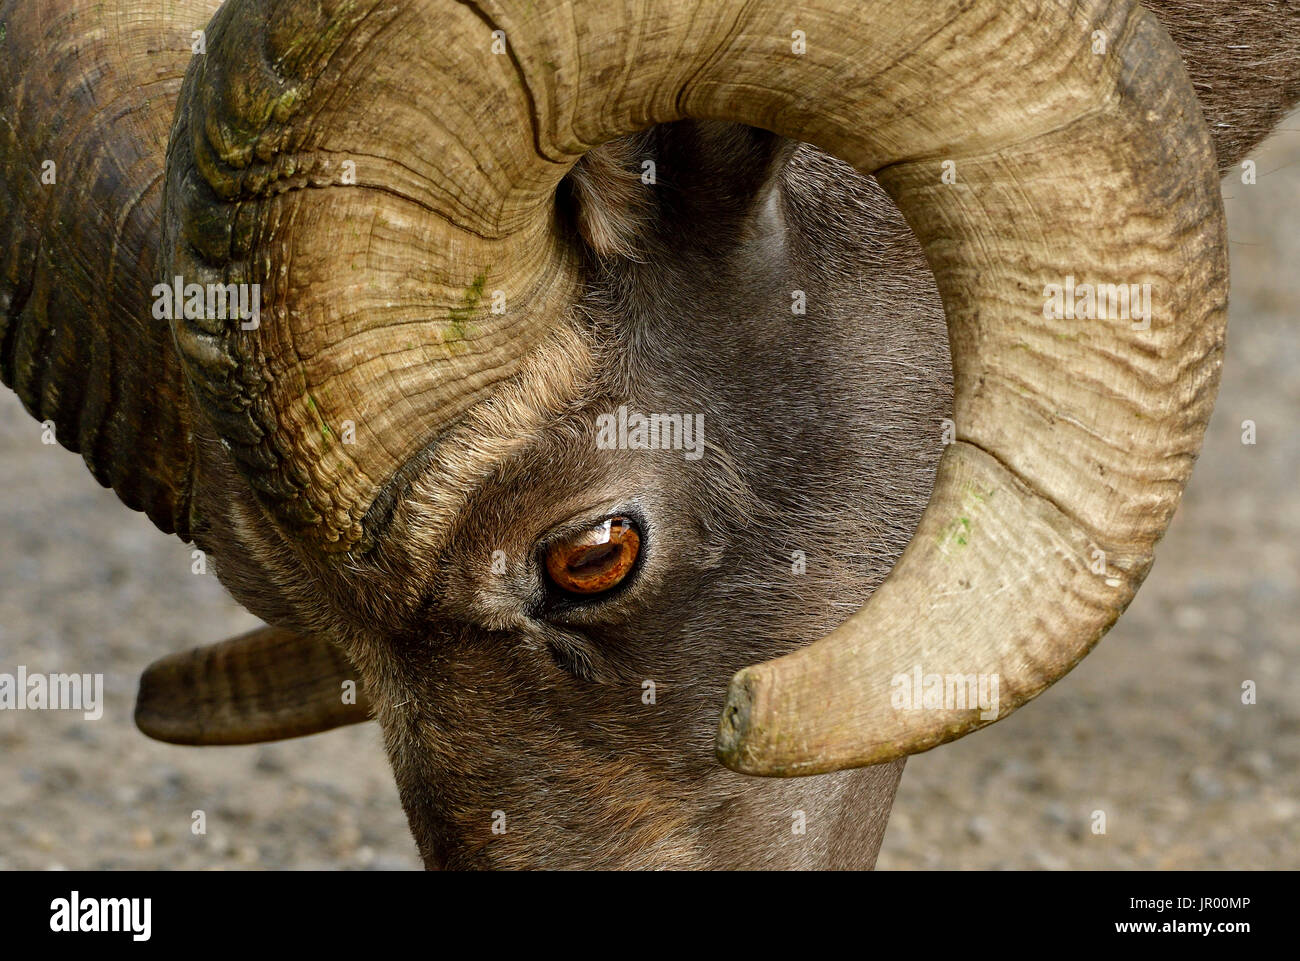 A close up side view of a wild bighorn sheep's face showing the eye and curl of his horn - Stock Image